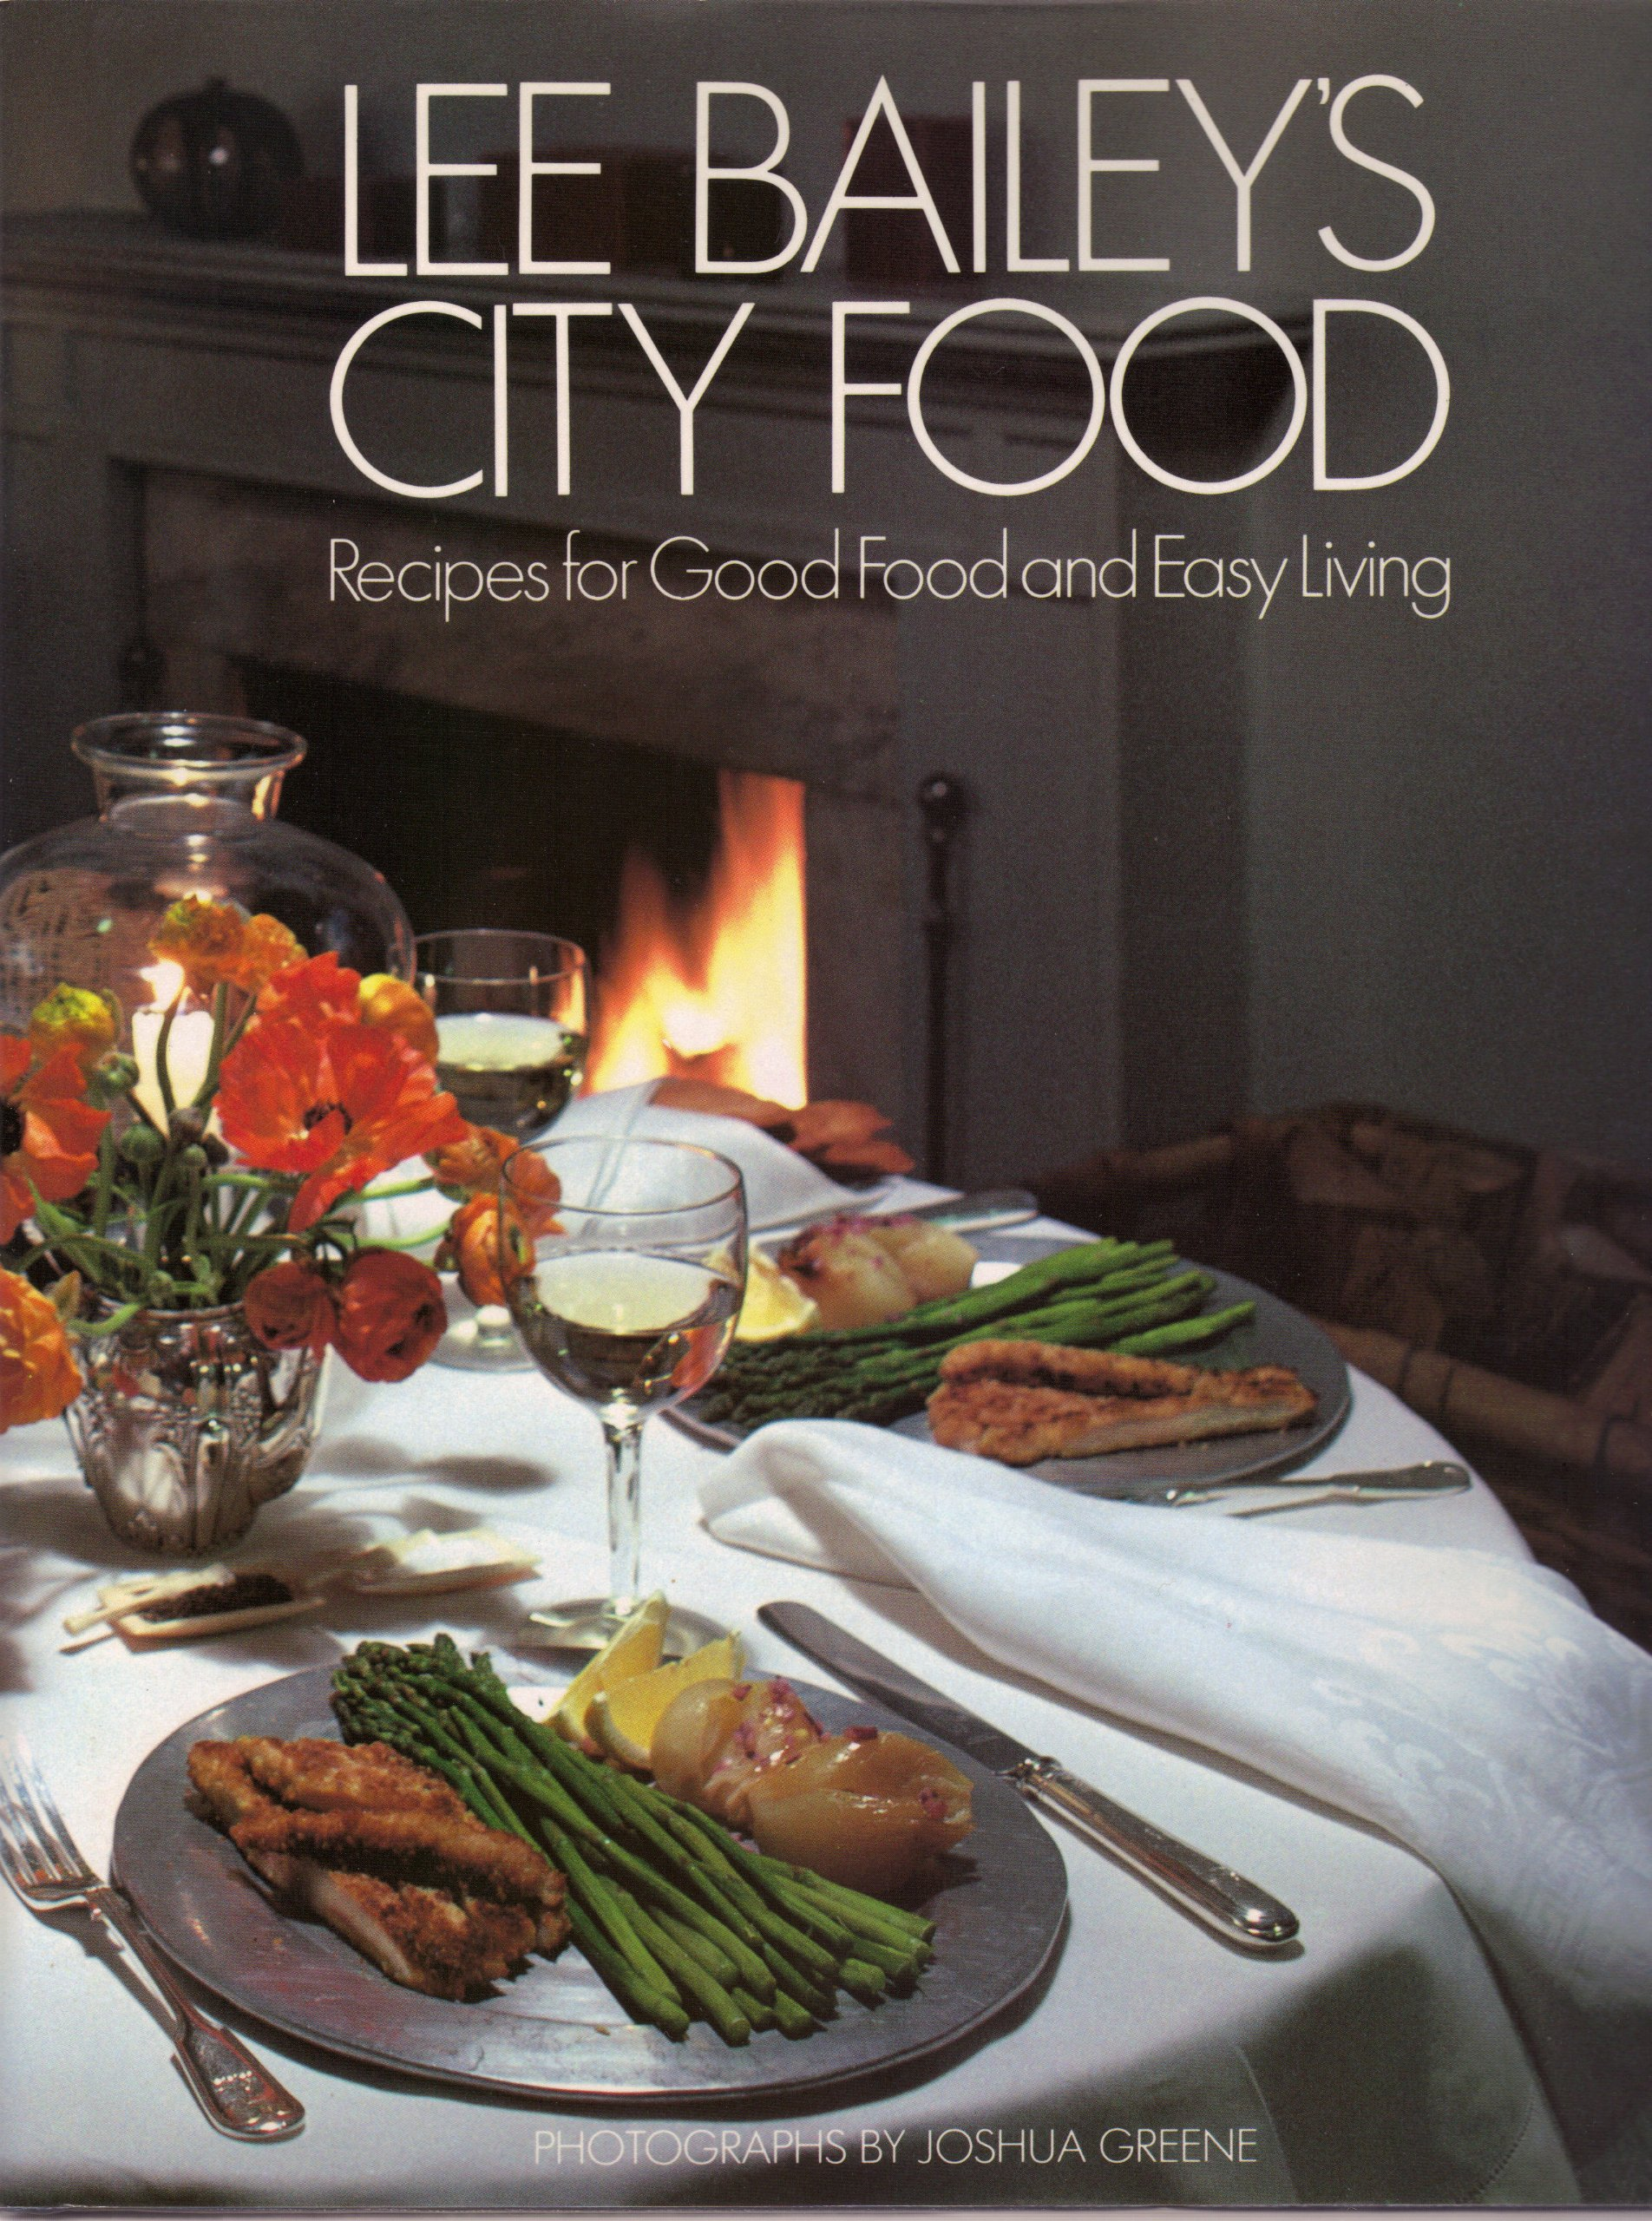 Lee baileys city food recipes for good food and easy living lee lee baileys city food recipes for good food and easy living lee bailey 9780517551547 amazon books forumfinder Images